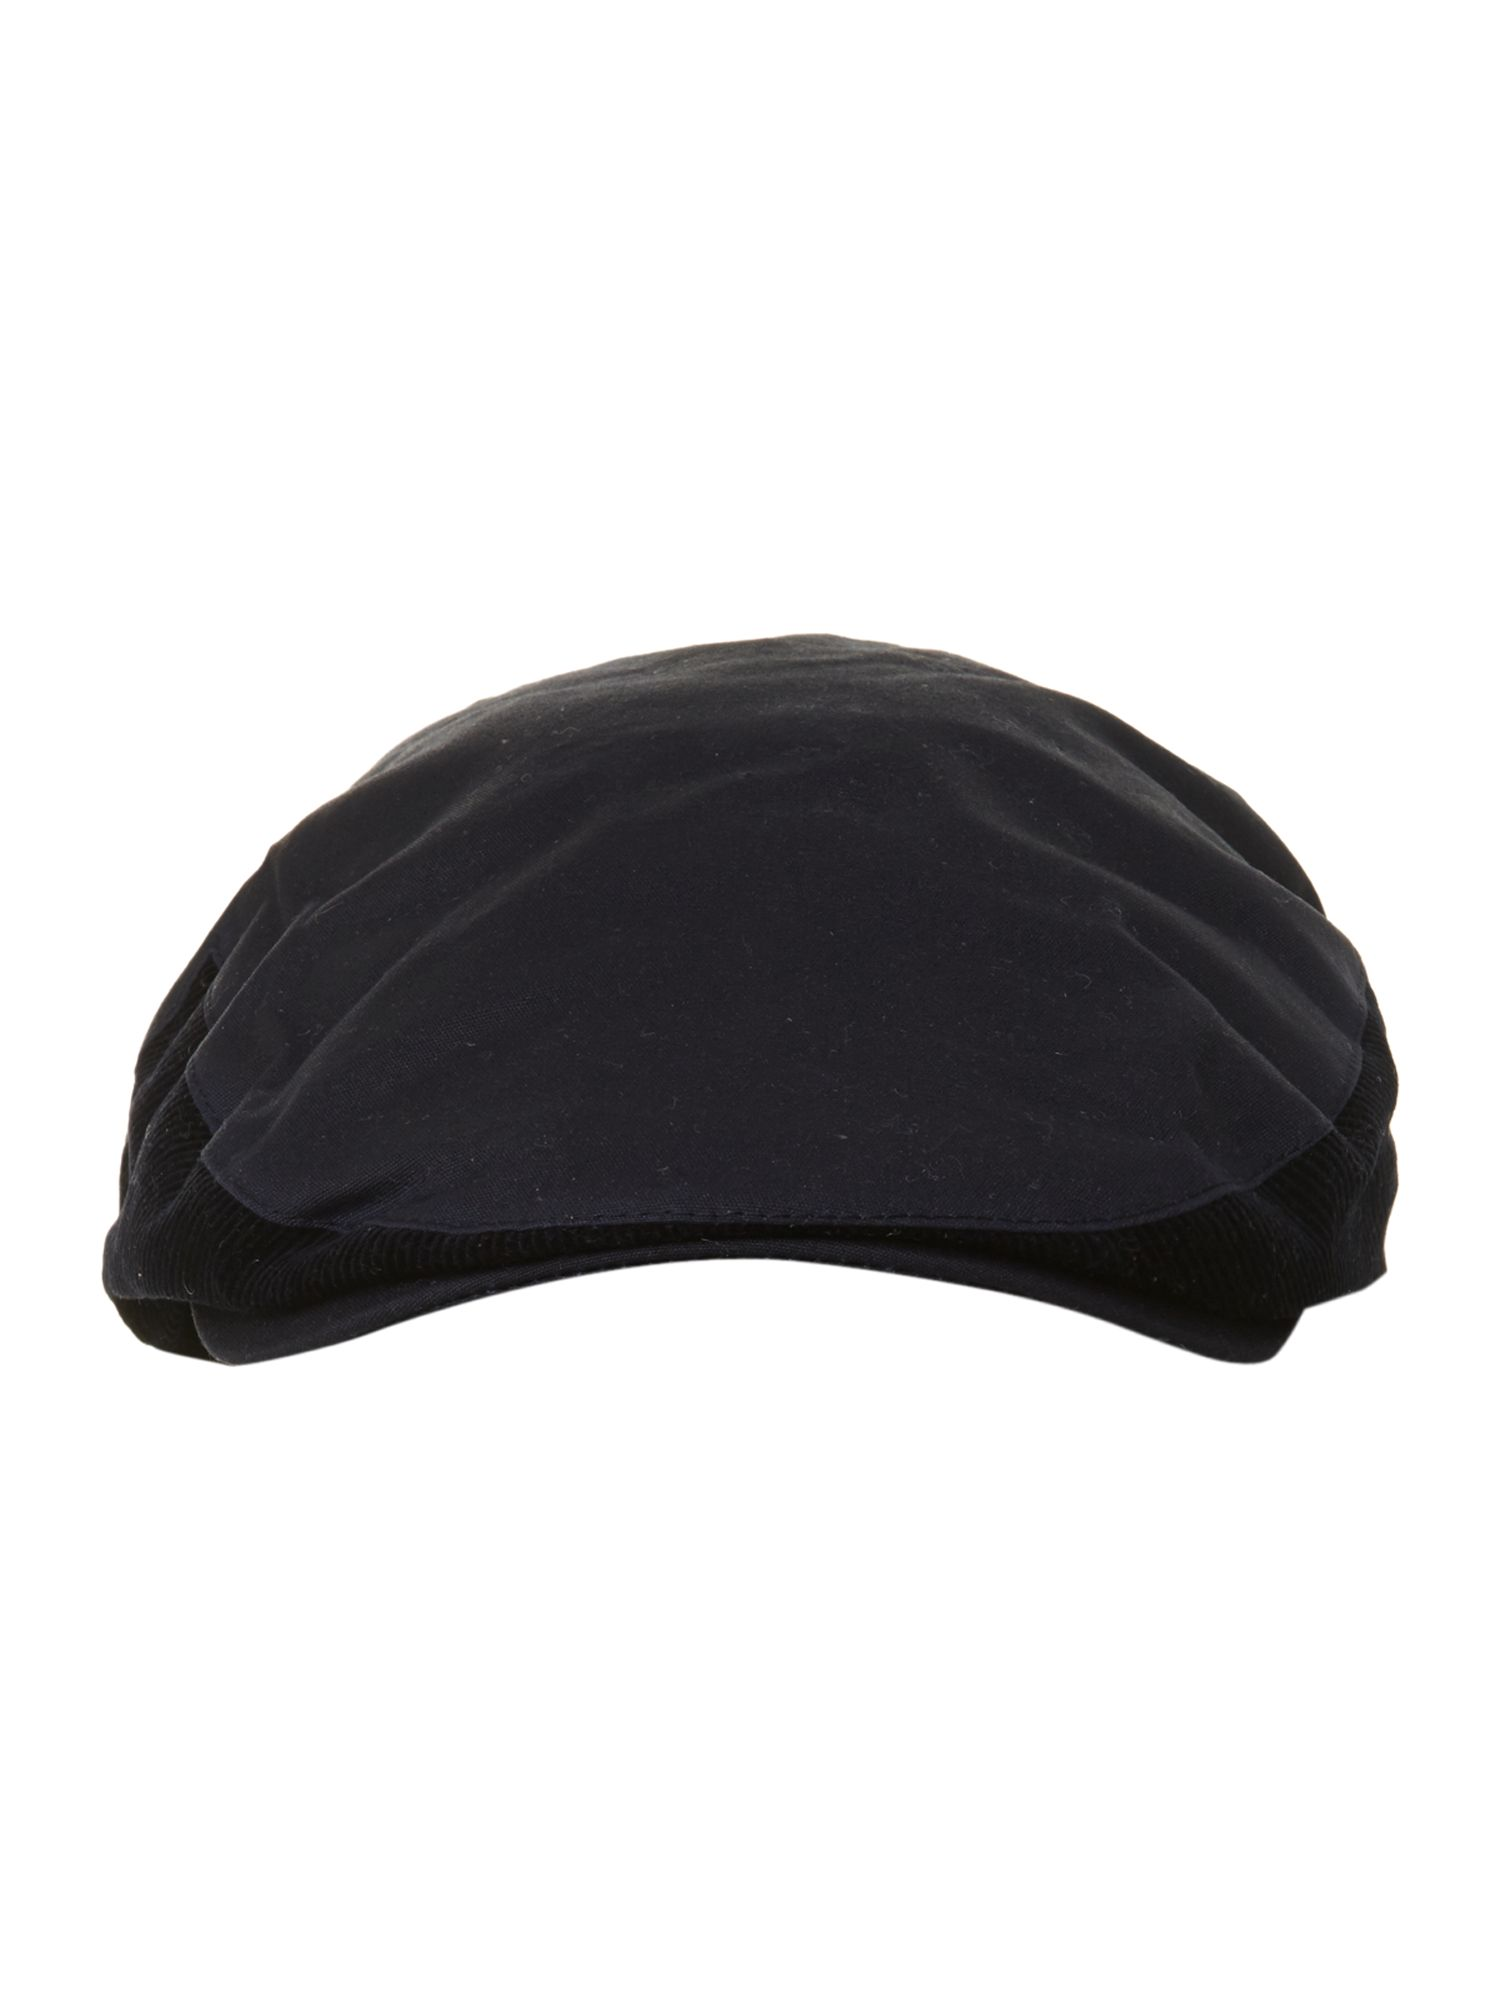 Wax flatcap with corduroy trim